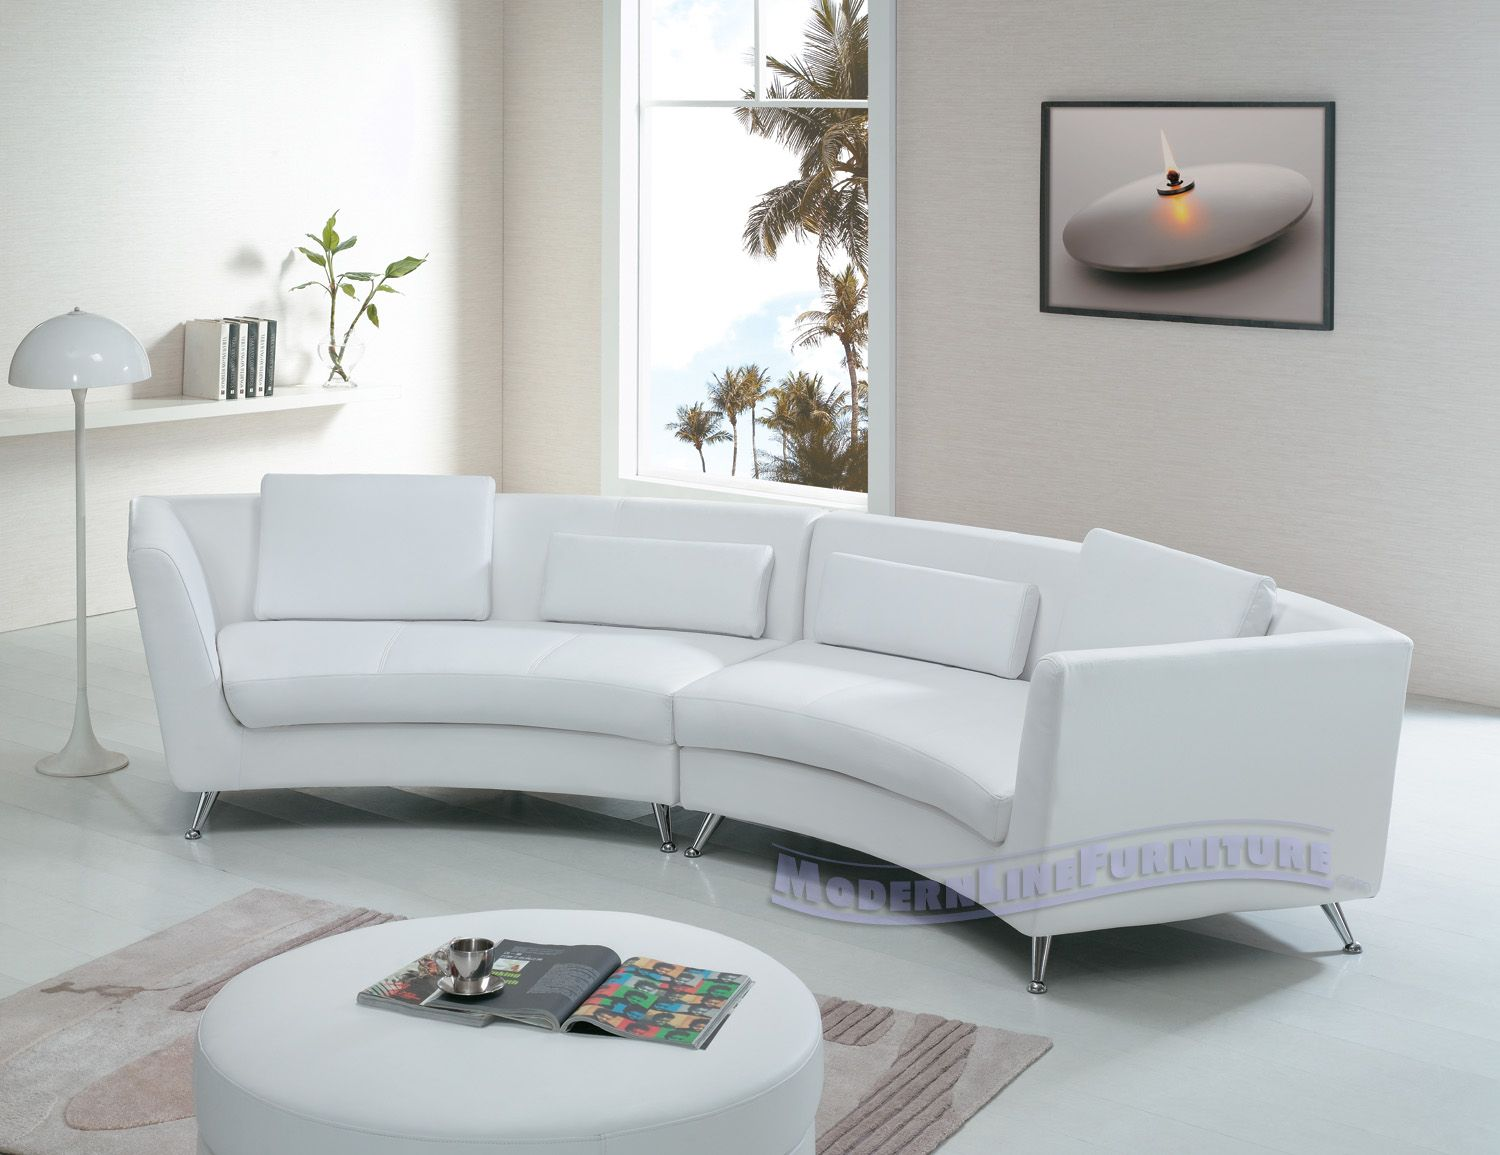 Oval Sofa Power Reclining Made In Usa Couch Curved Leather Sofas Couches